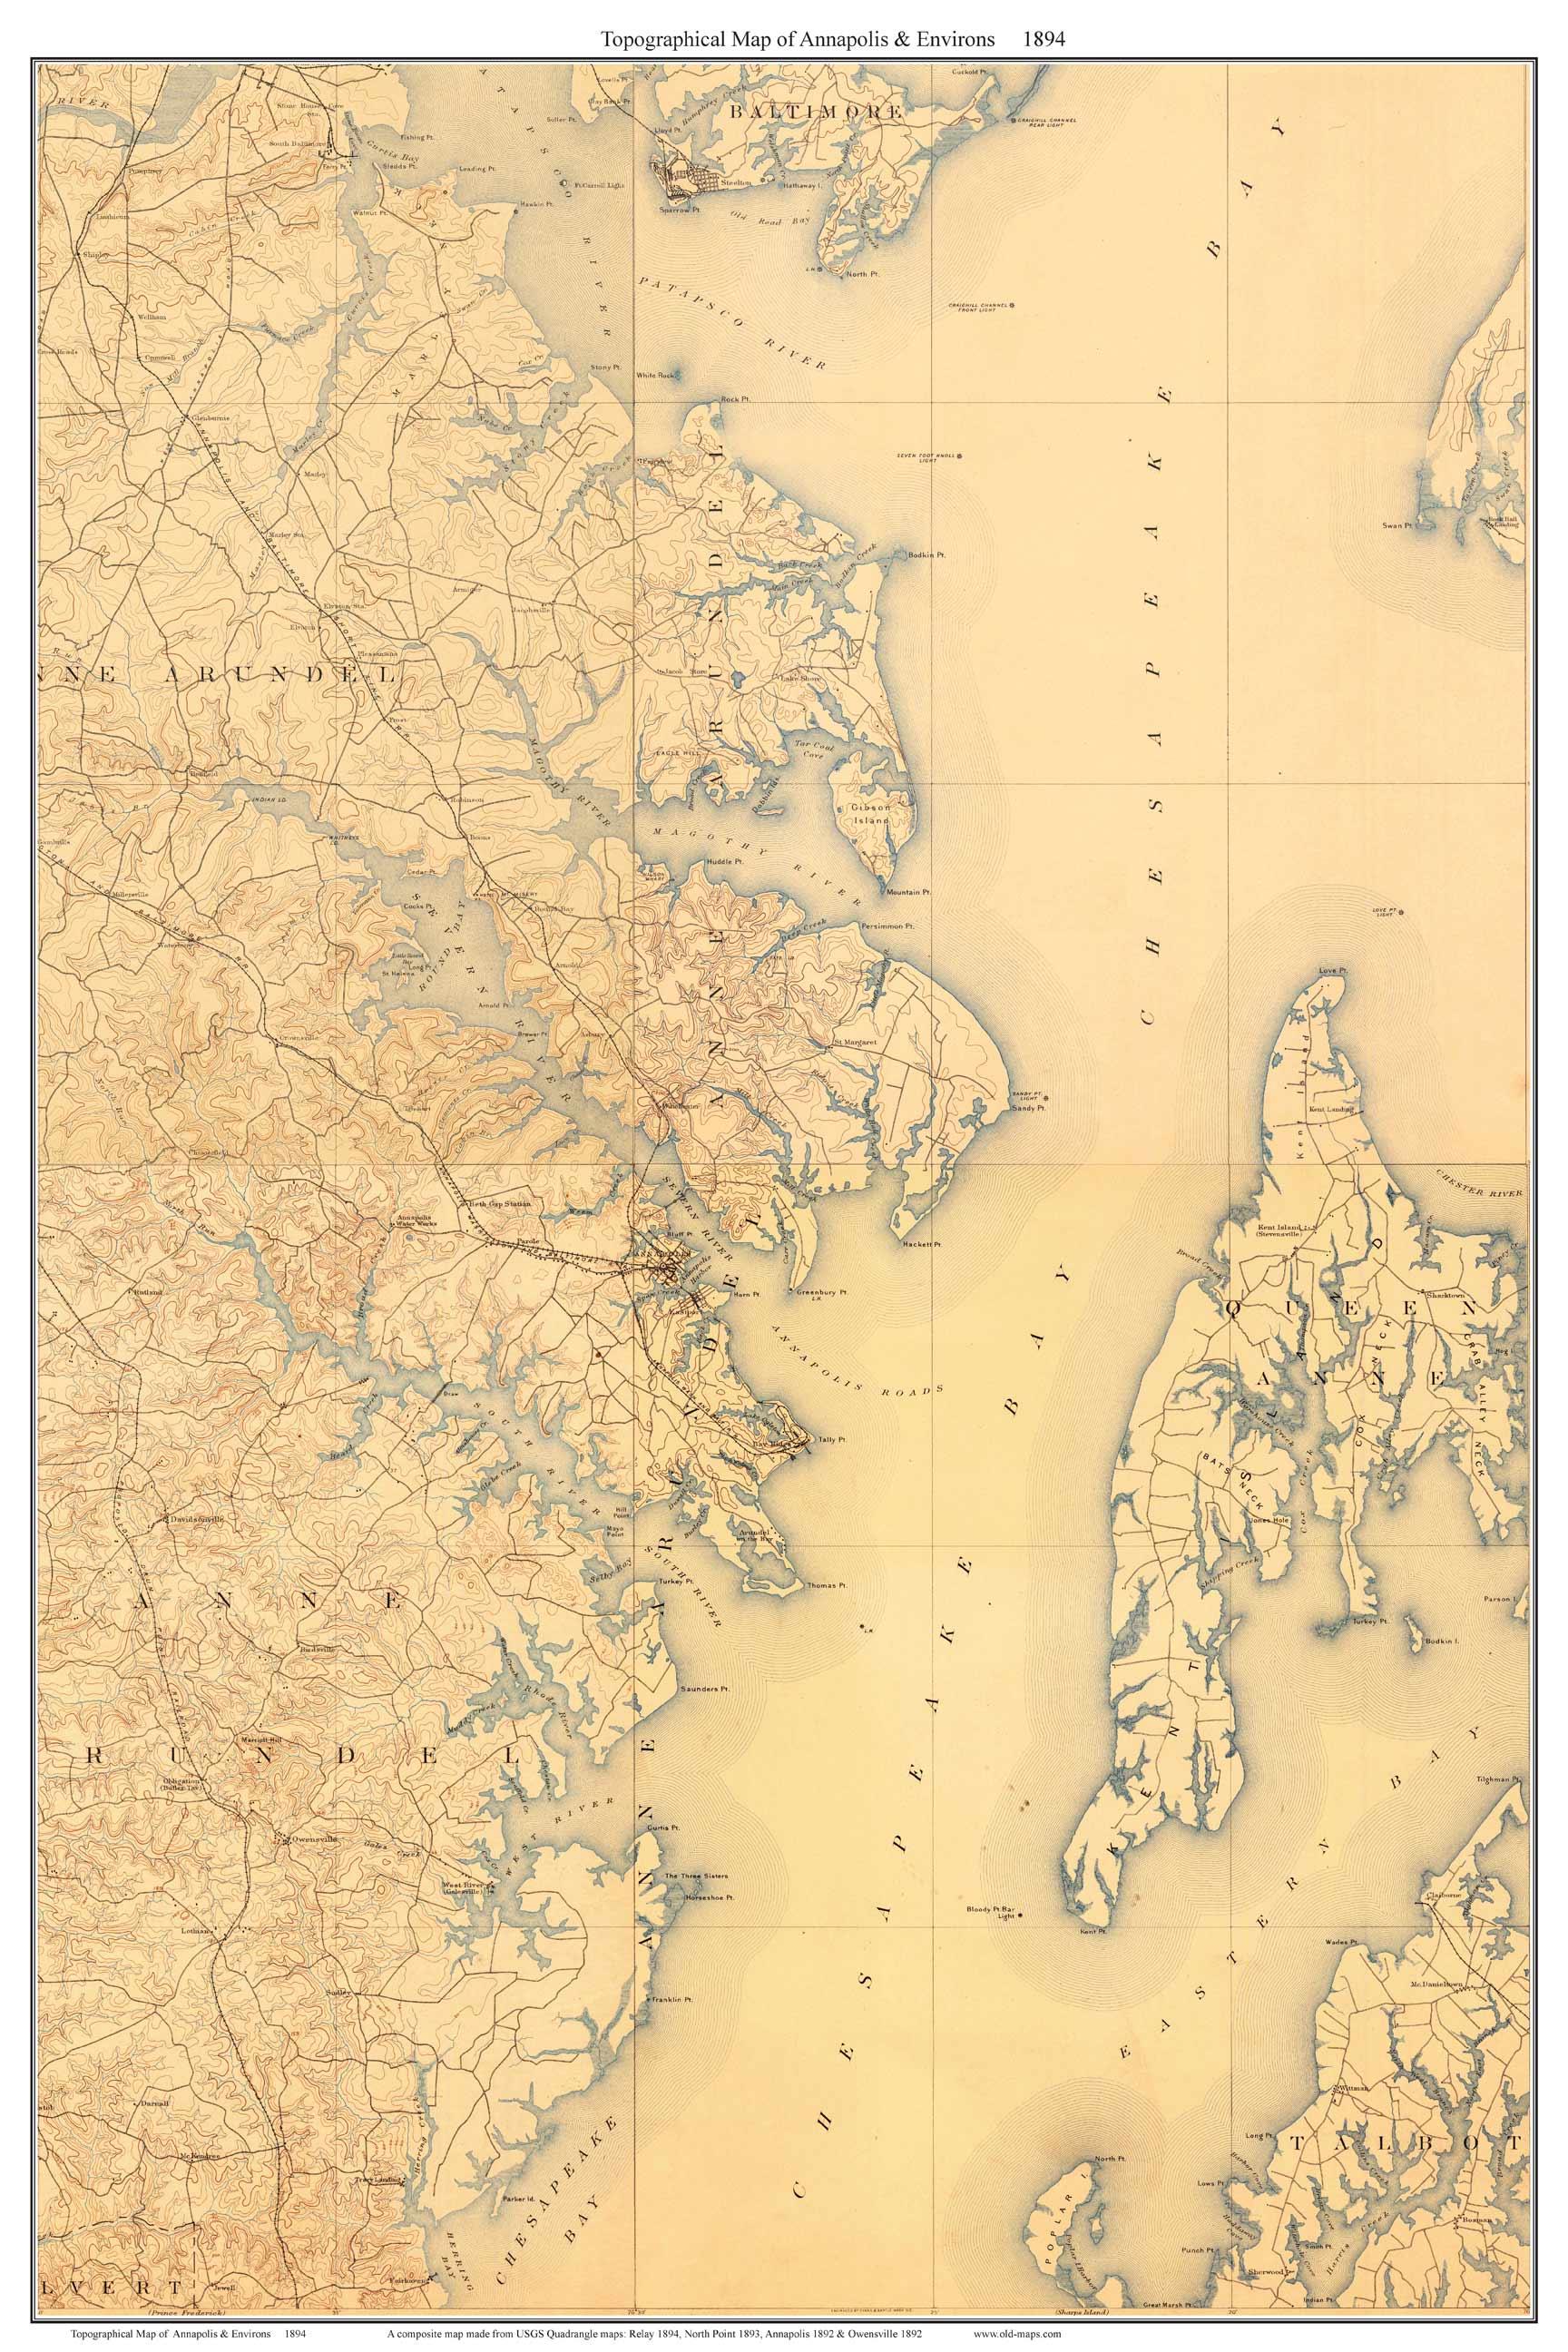 Old Topographical Maps of the Chesapeake Bay Area